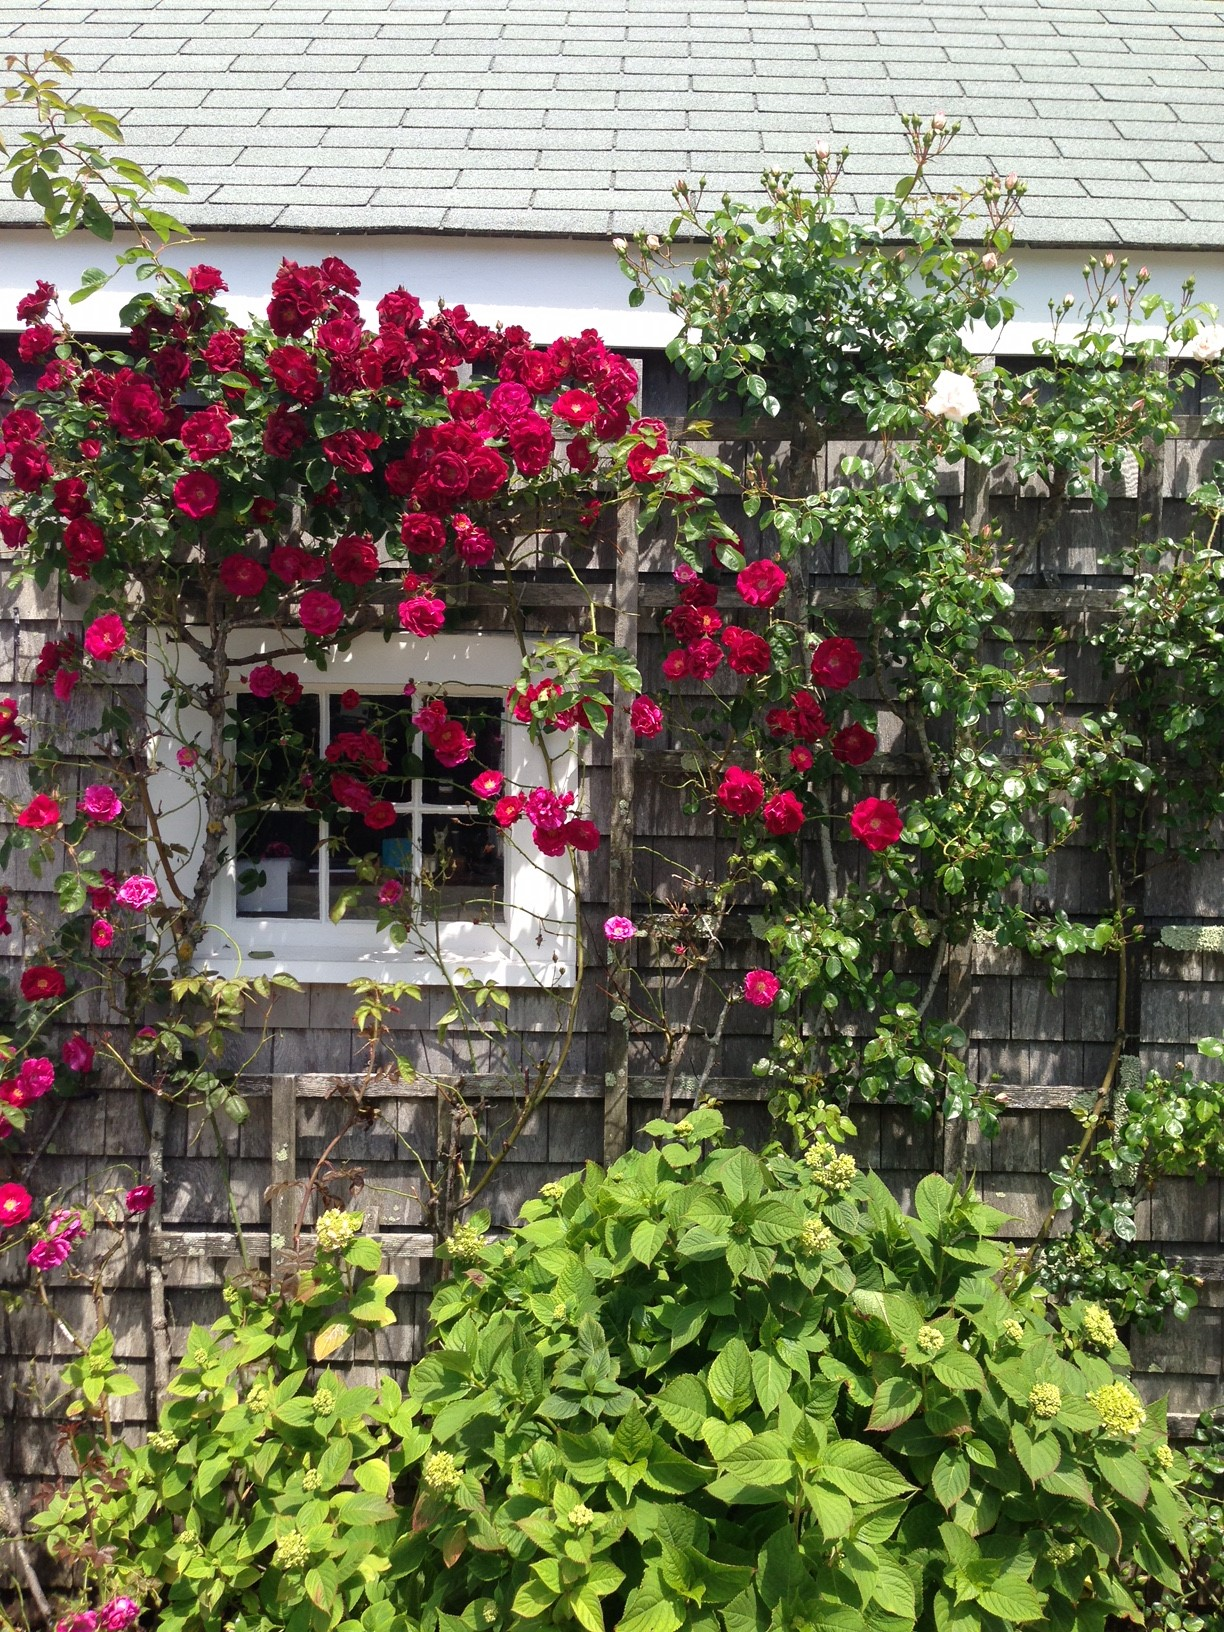 Roses In Garden: Climbing Roses And Their Support Structures, Planting